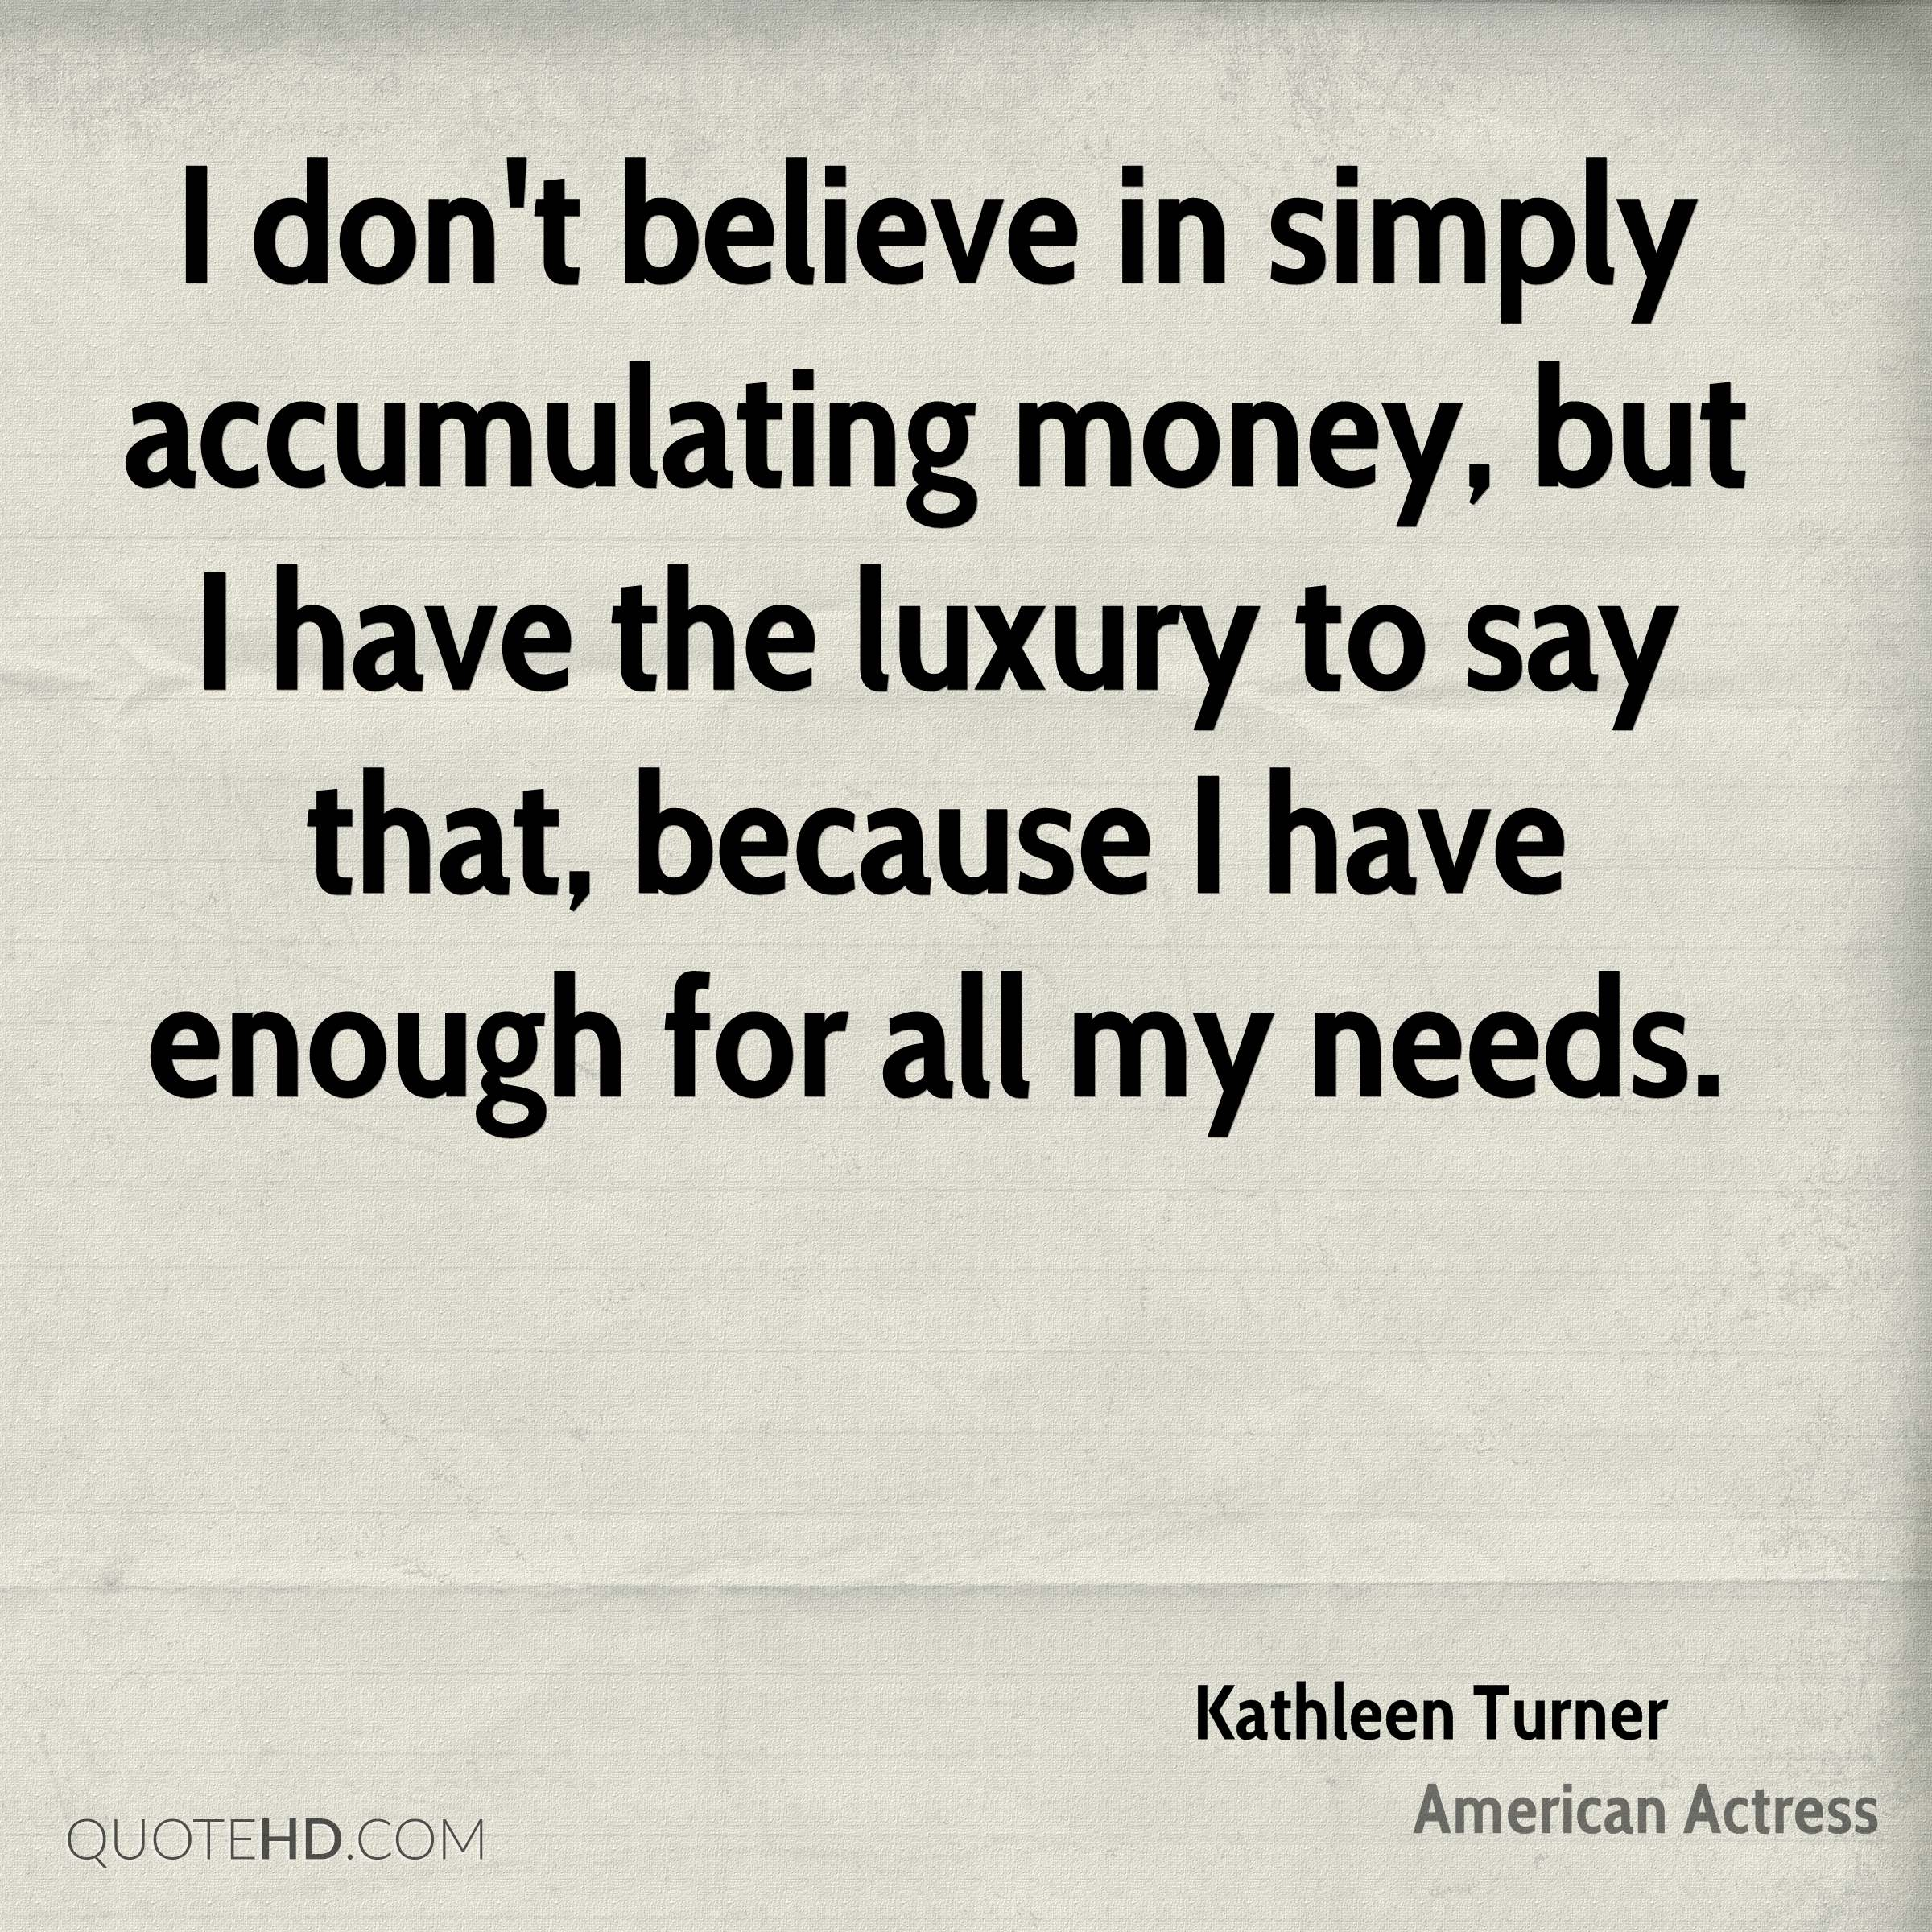 I don't believe in simply accumulating money, but I have the luxury to say that, because I have enough for all my needs.